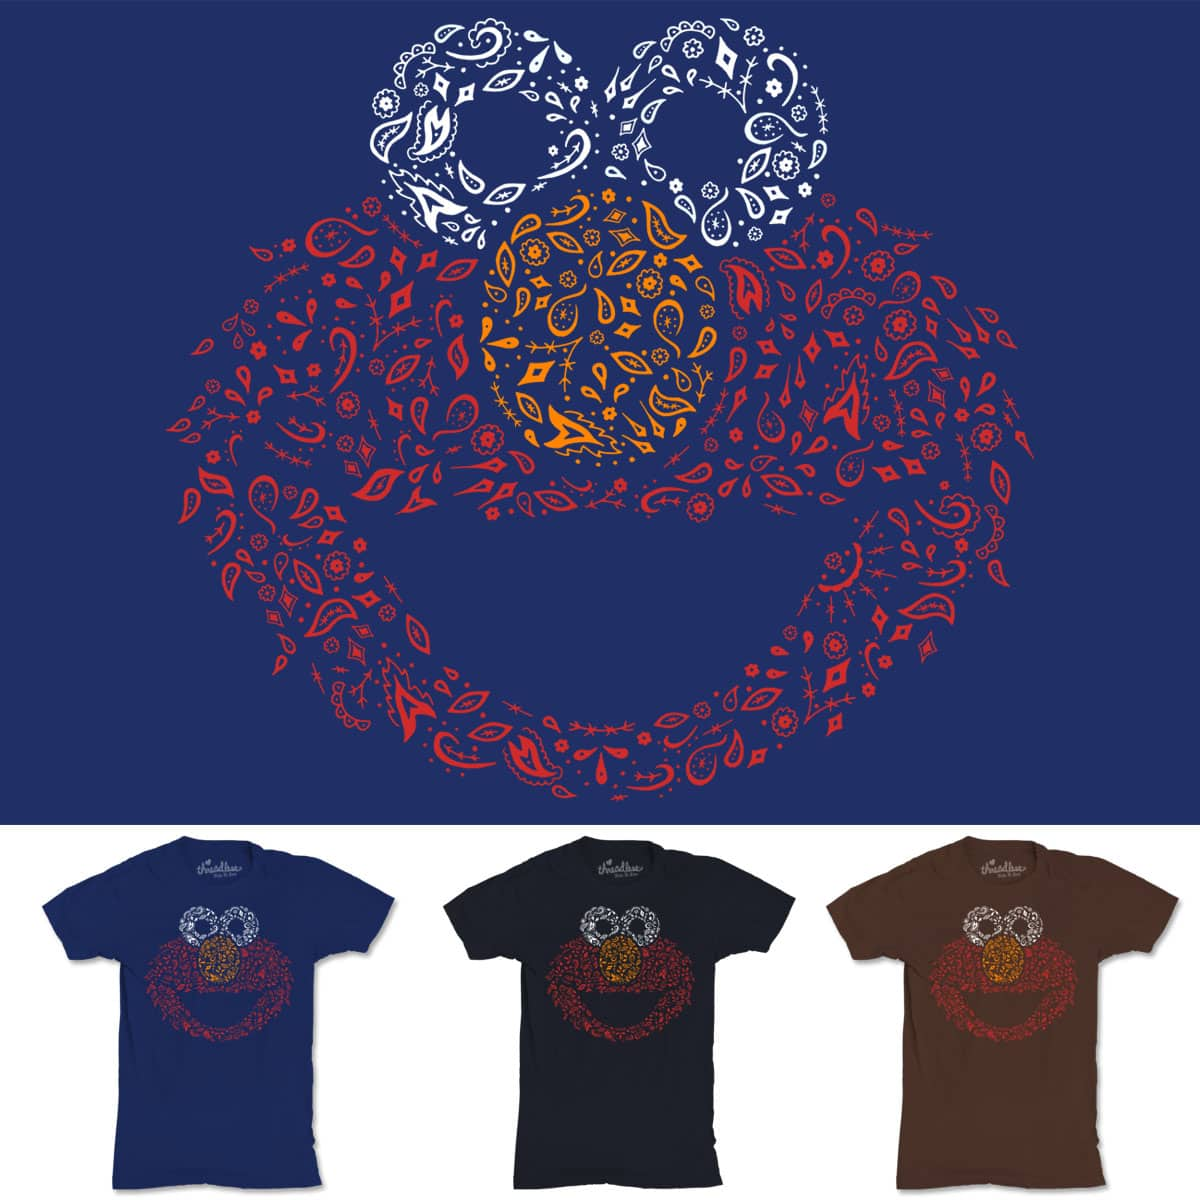 Ornate Elmo by mofugger69 on Threadless